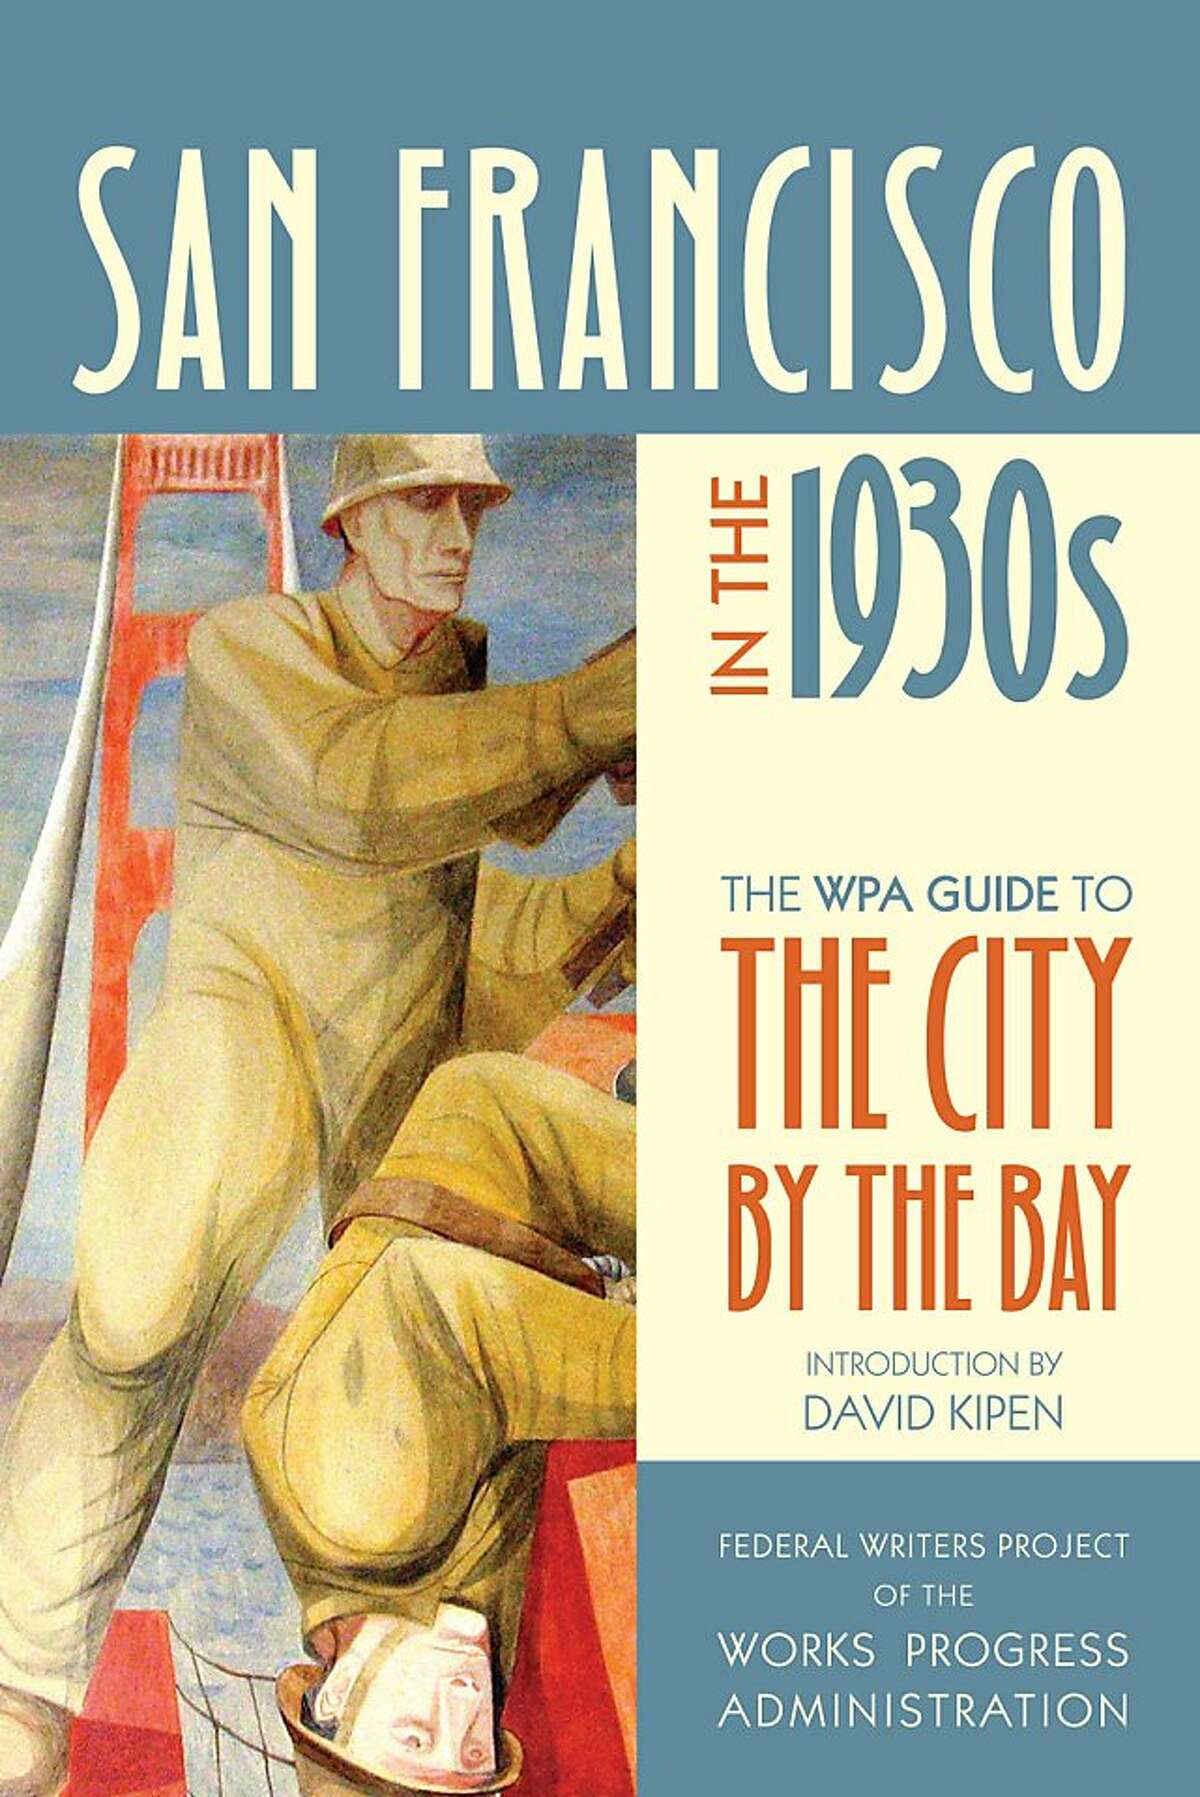 The WPA Guide To The City By The Bay